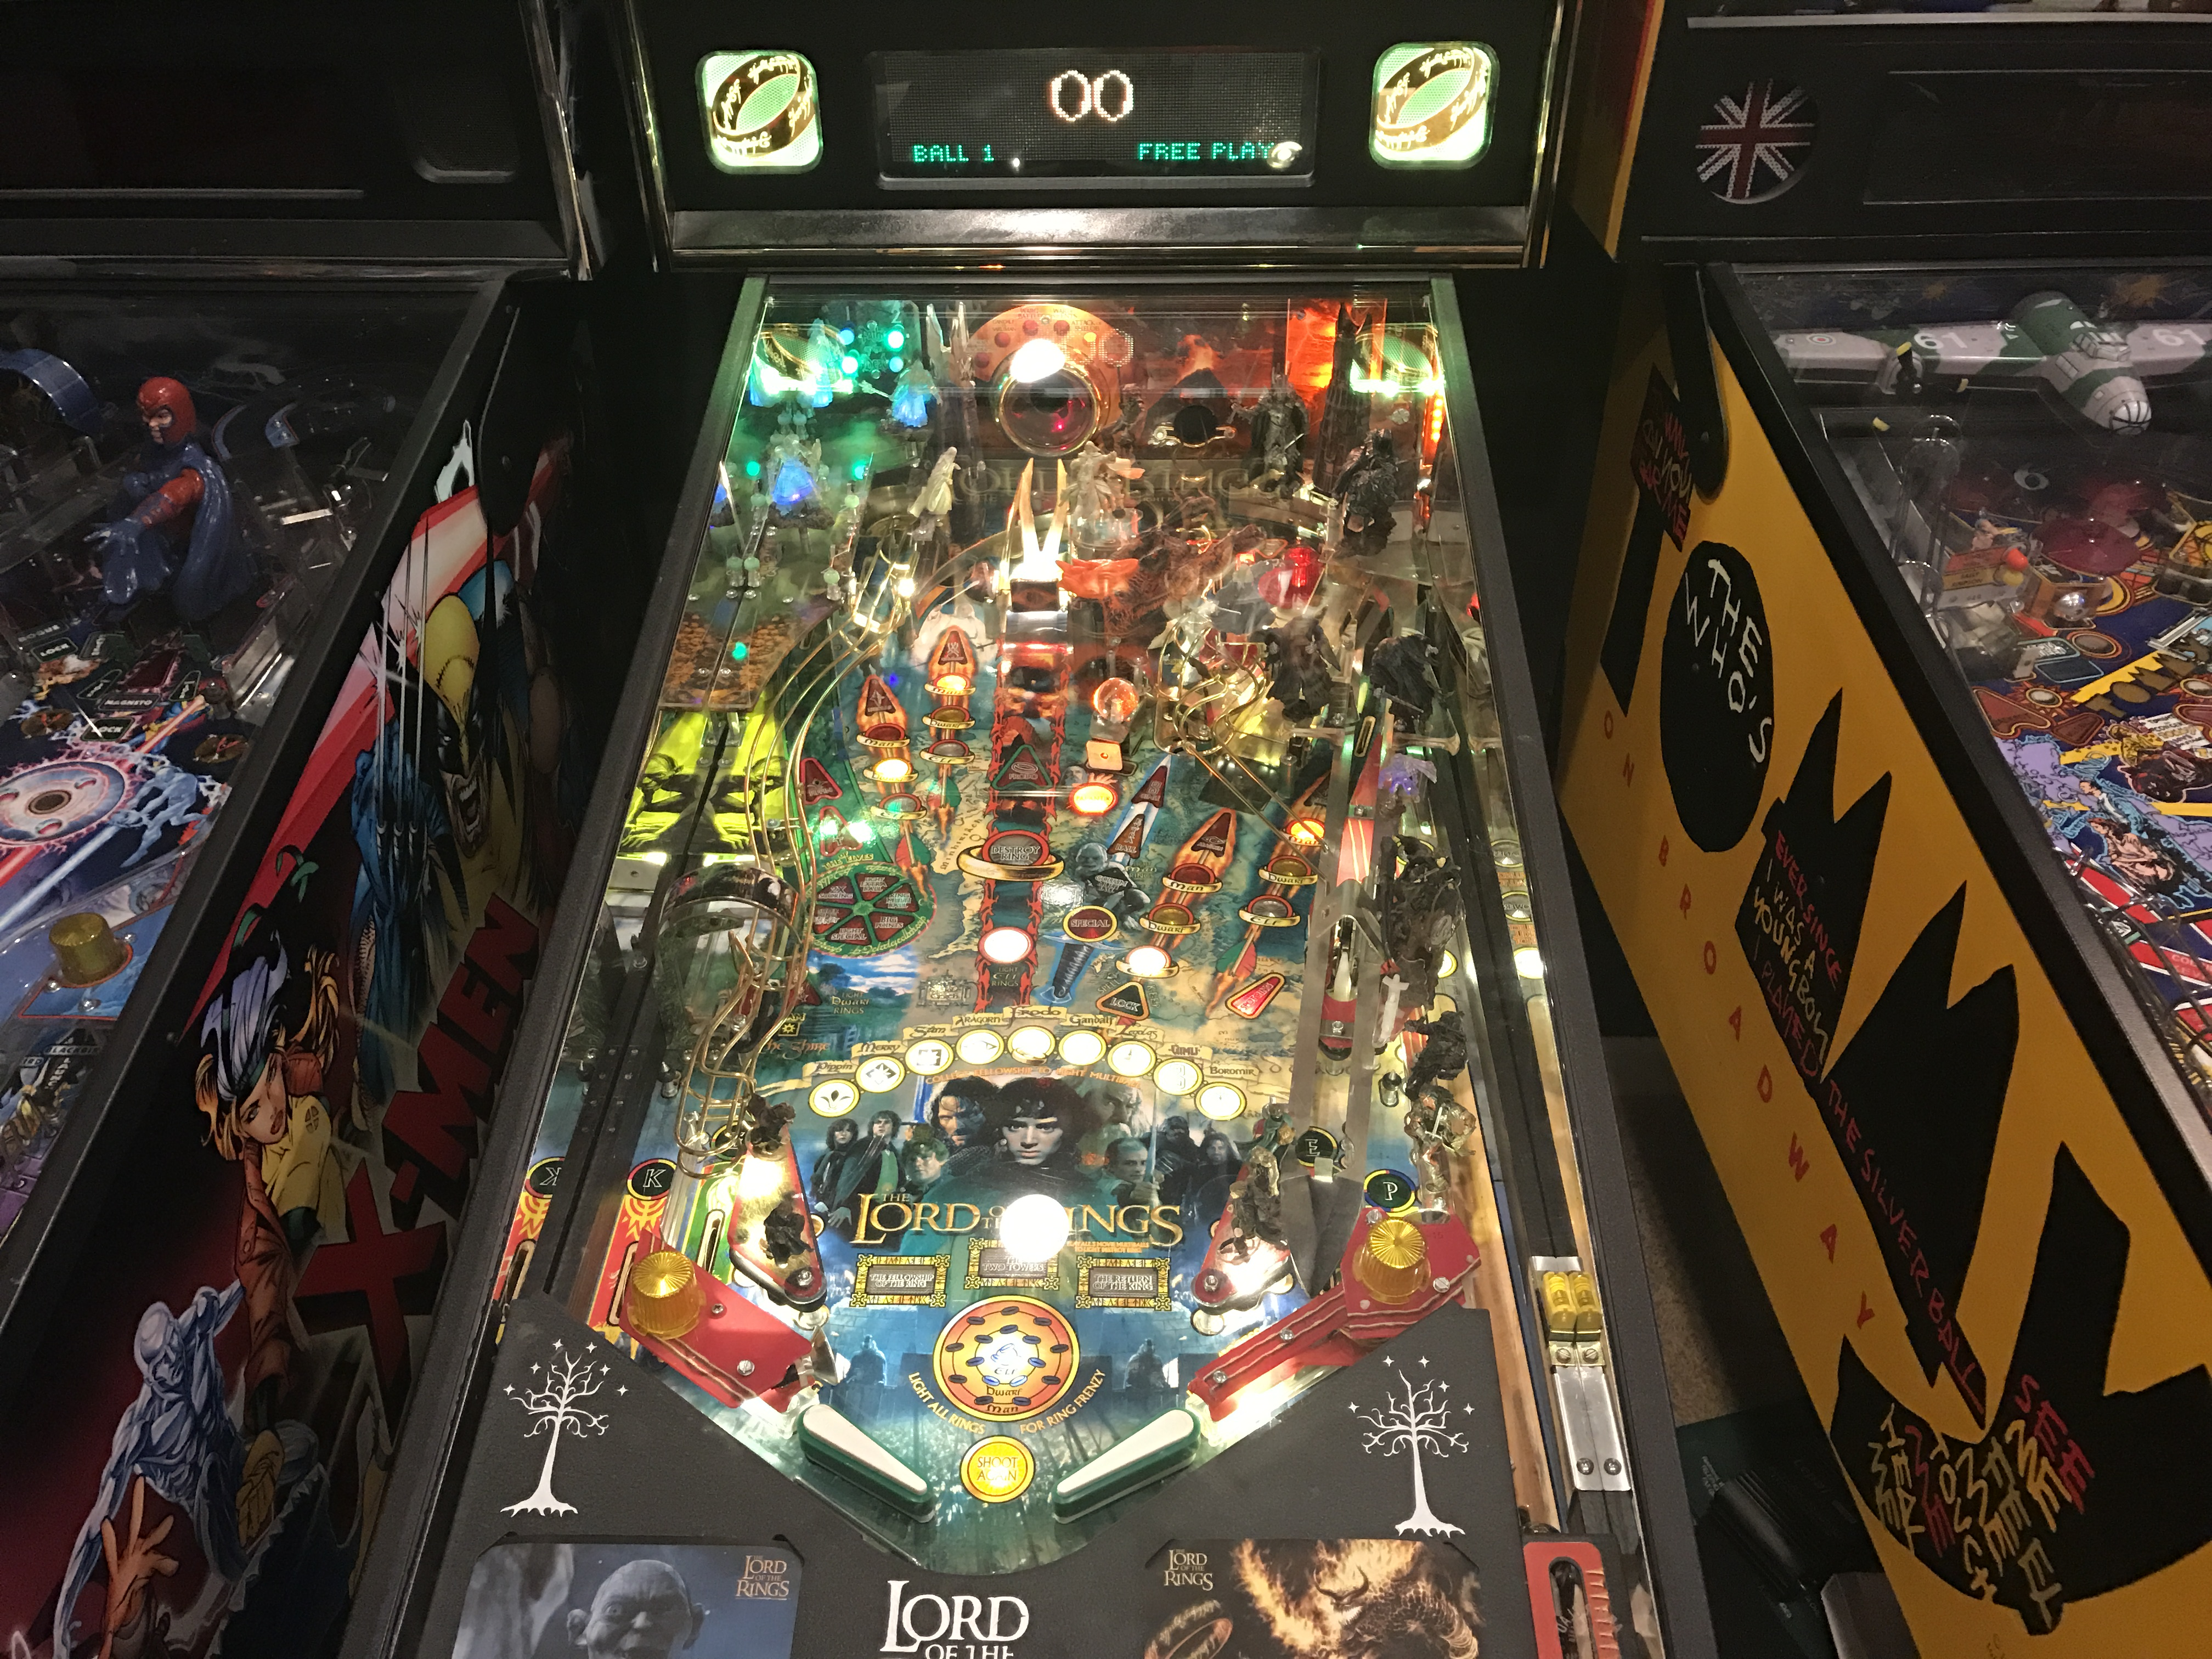 lord of the rings pinball machine game room info